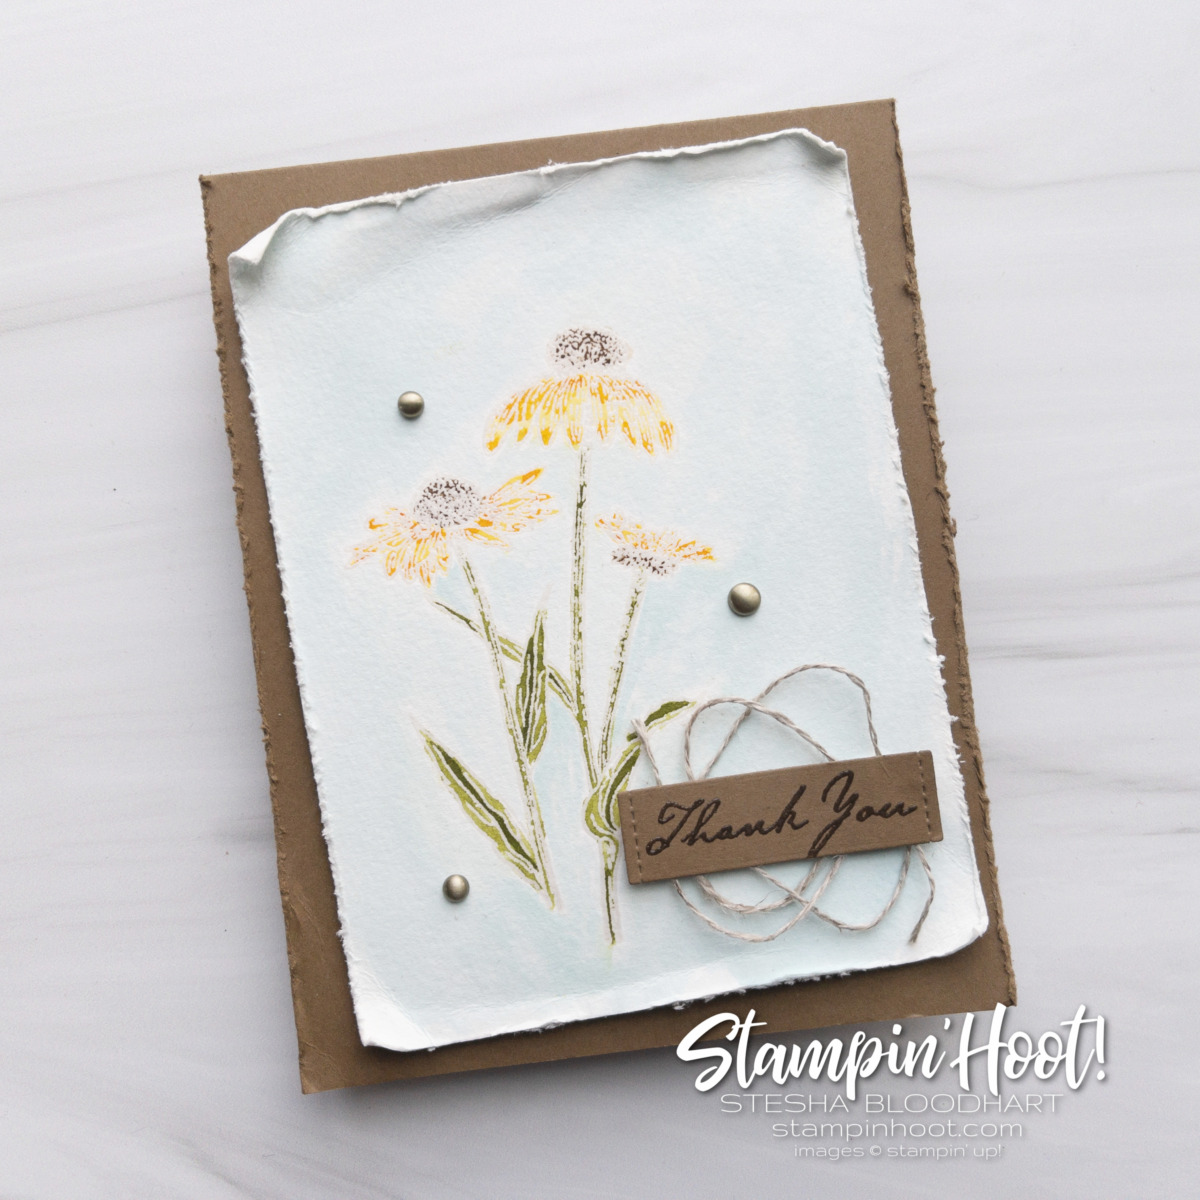 Nature's Harvest Stamp Set from Stampin' Up! Available August 3, 2021. Thank you card by Stesha Bloodhart Stampin' Hoot!